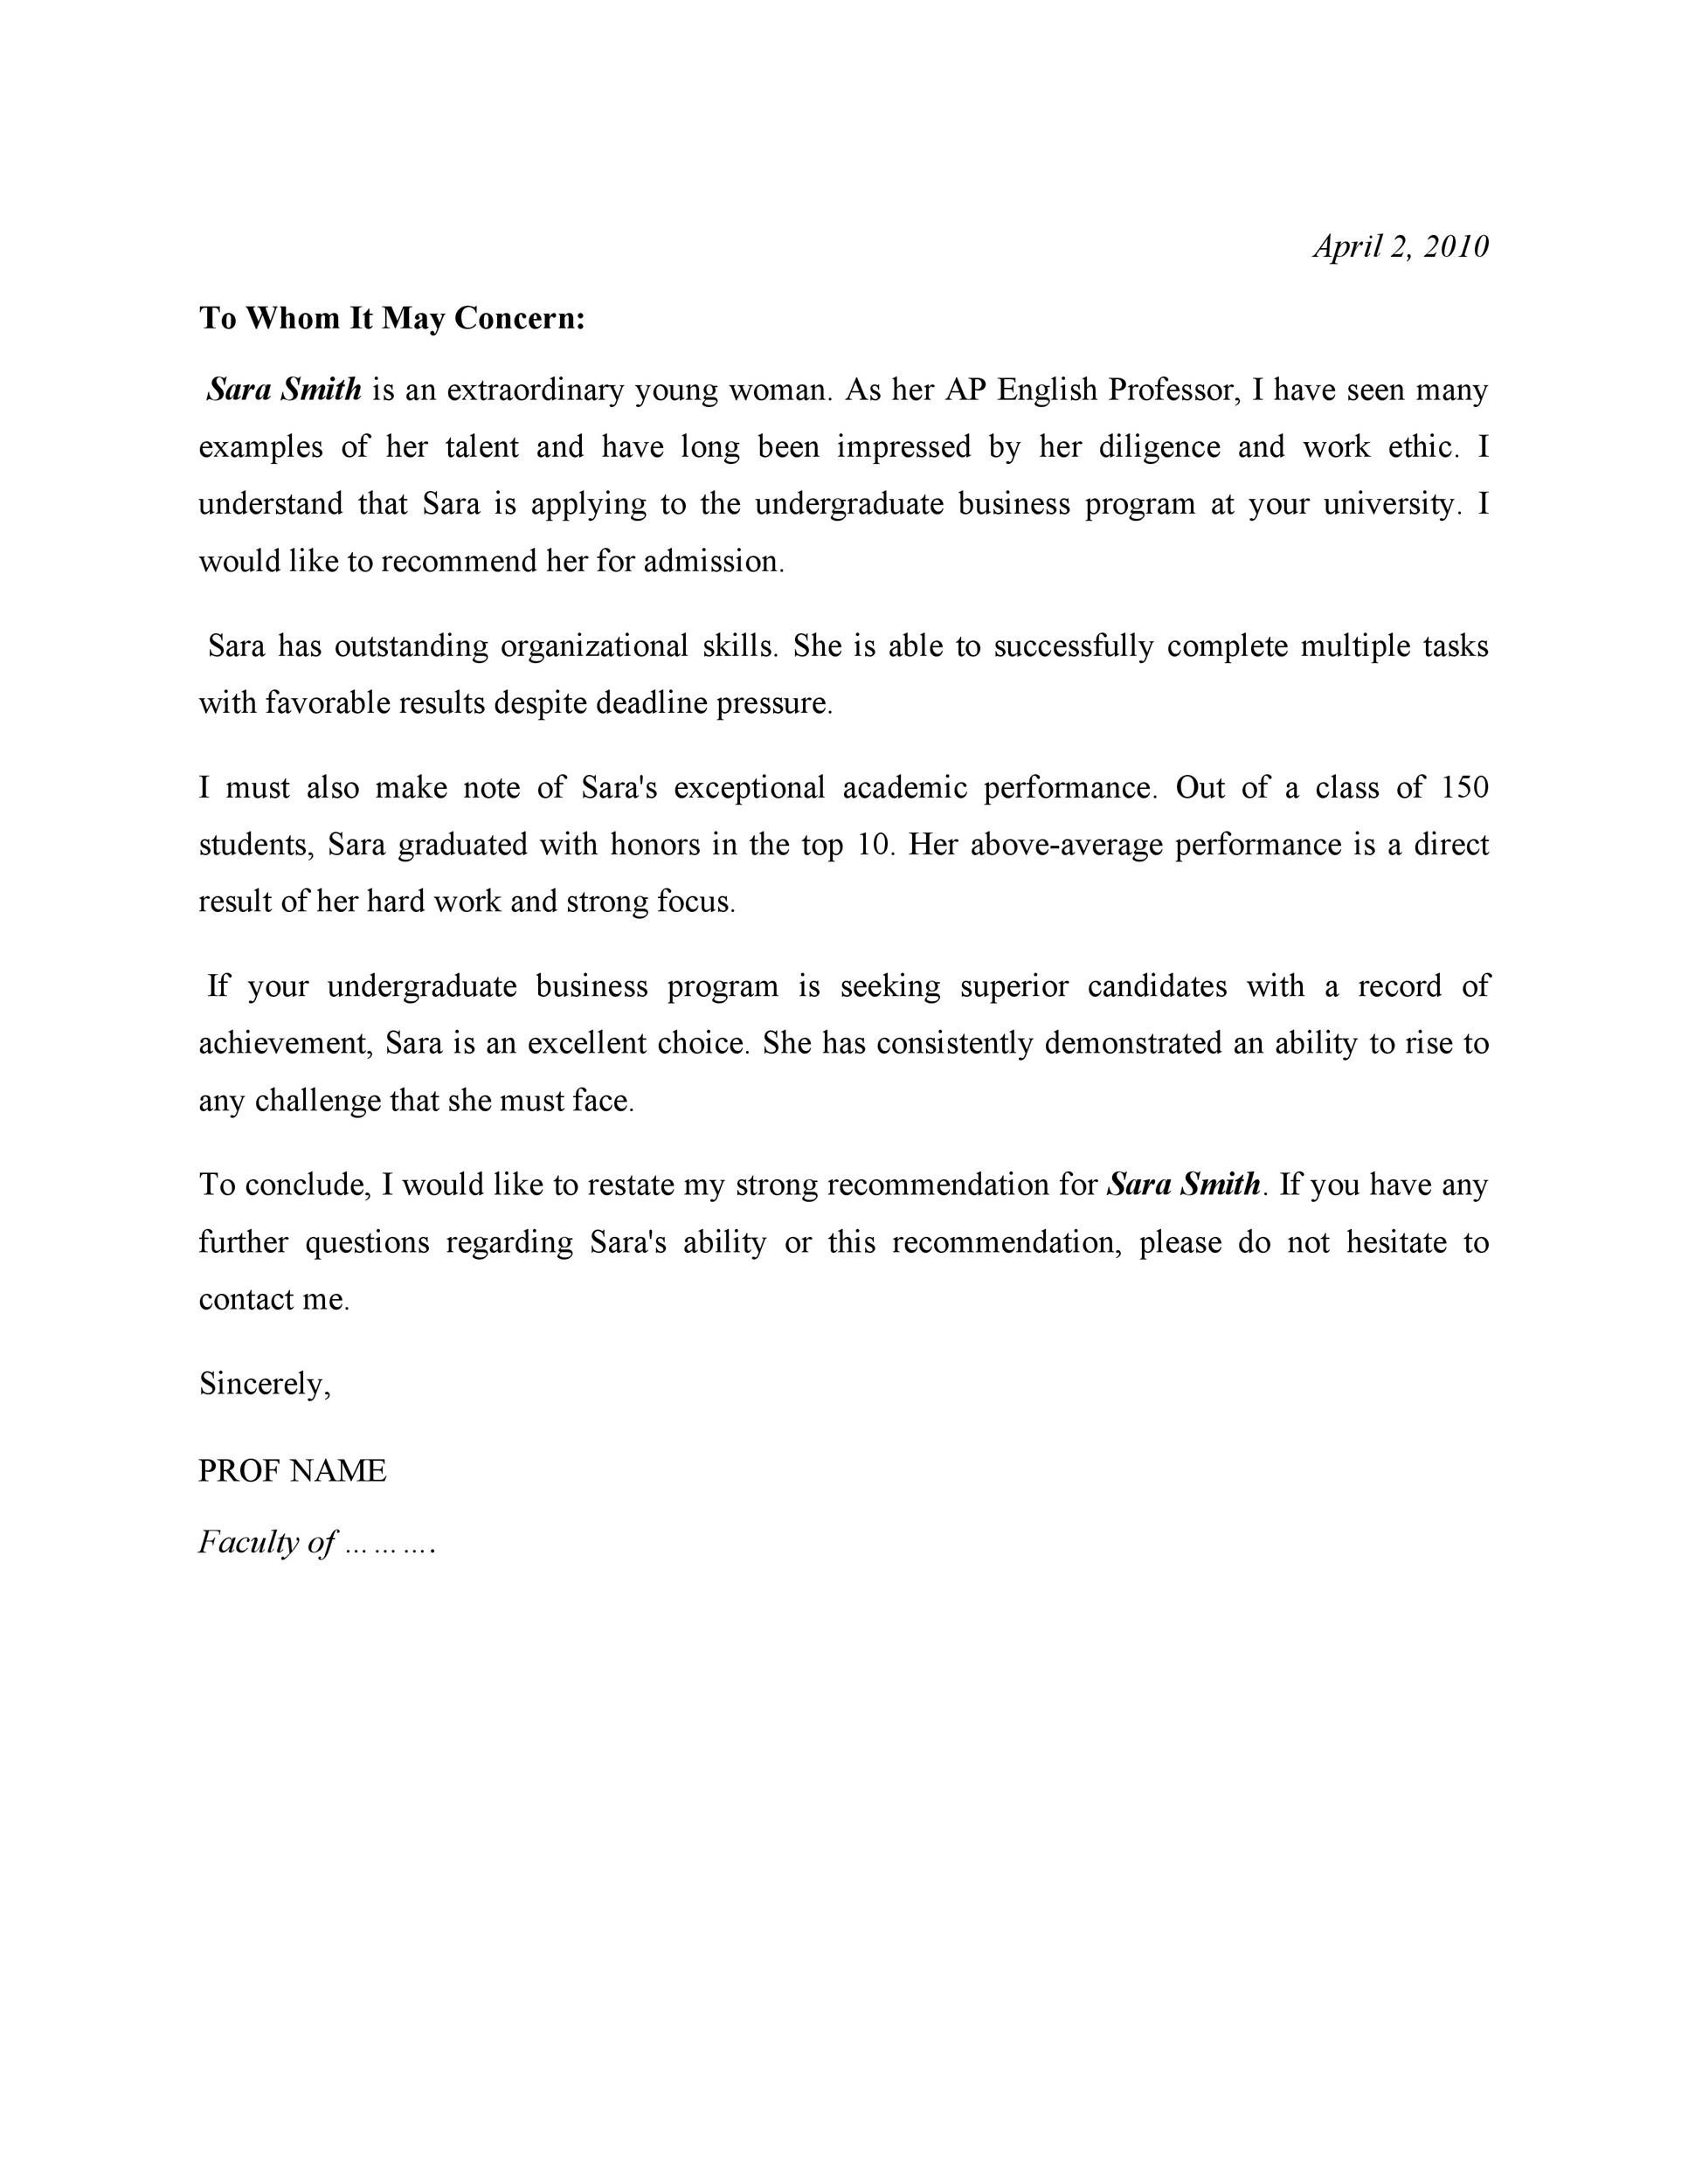 Free Recommendation Letter From Teacher Template 37